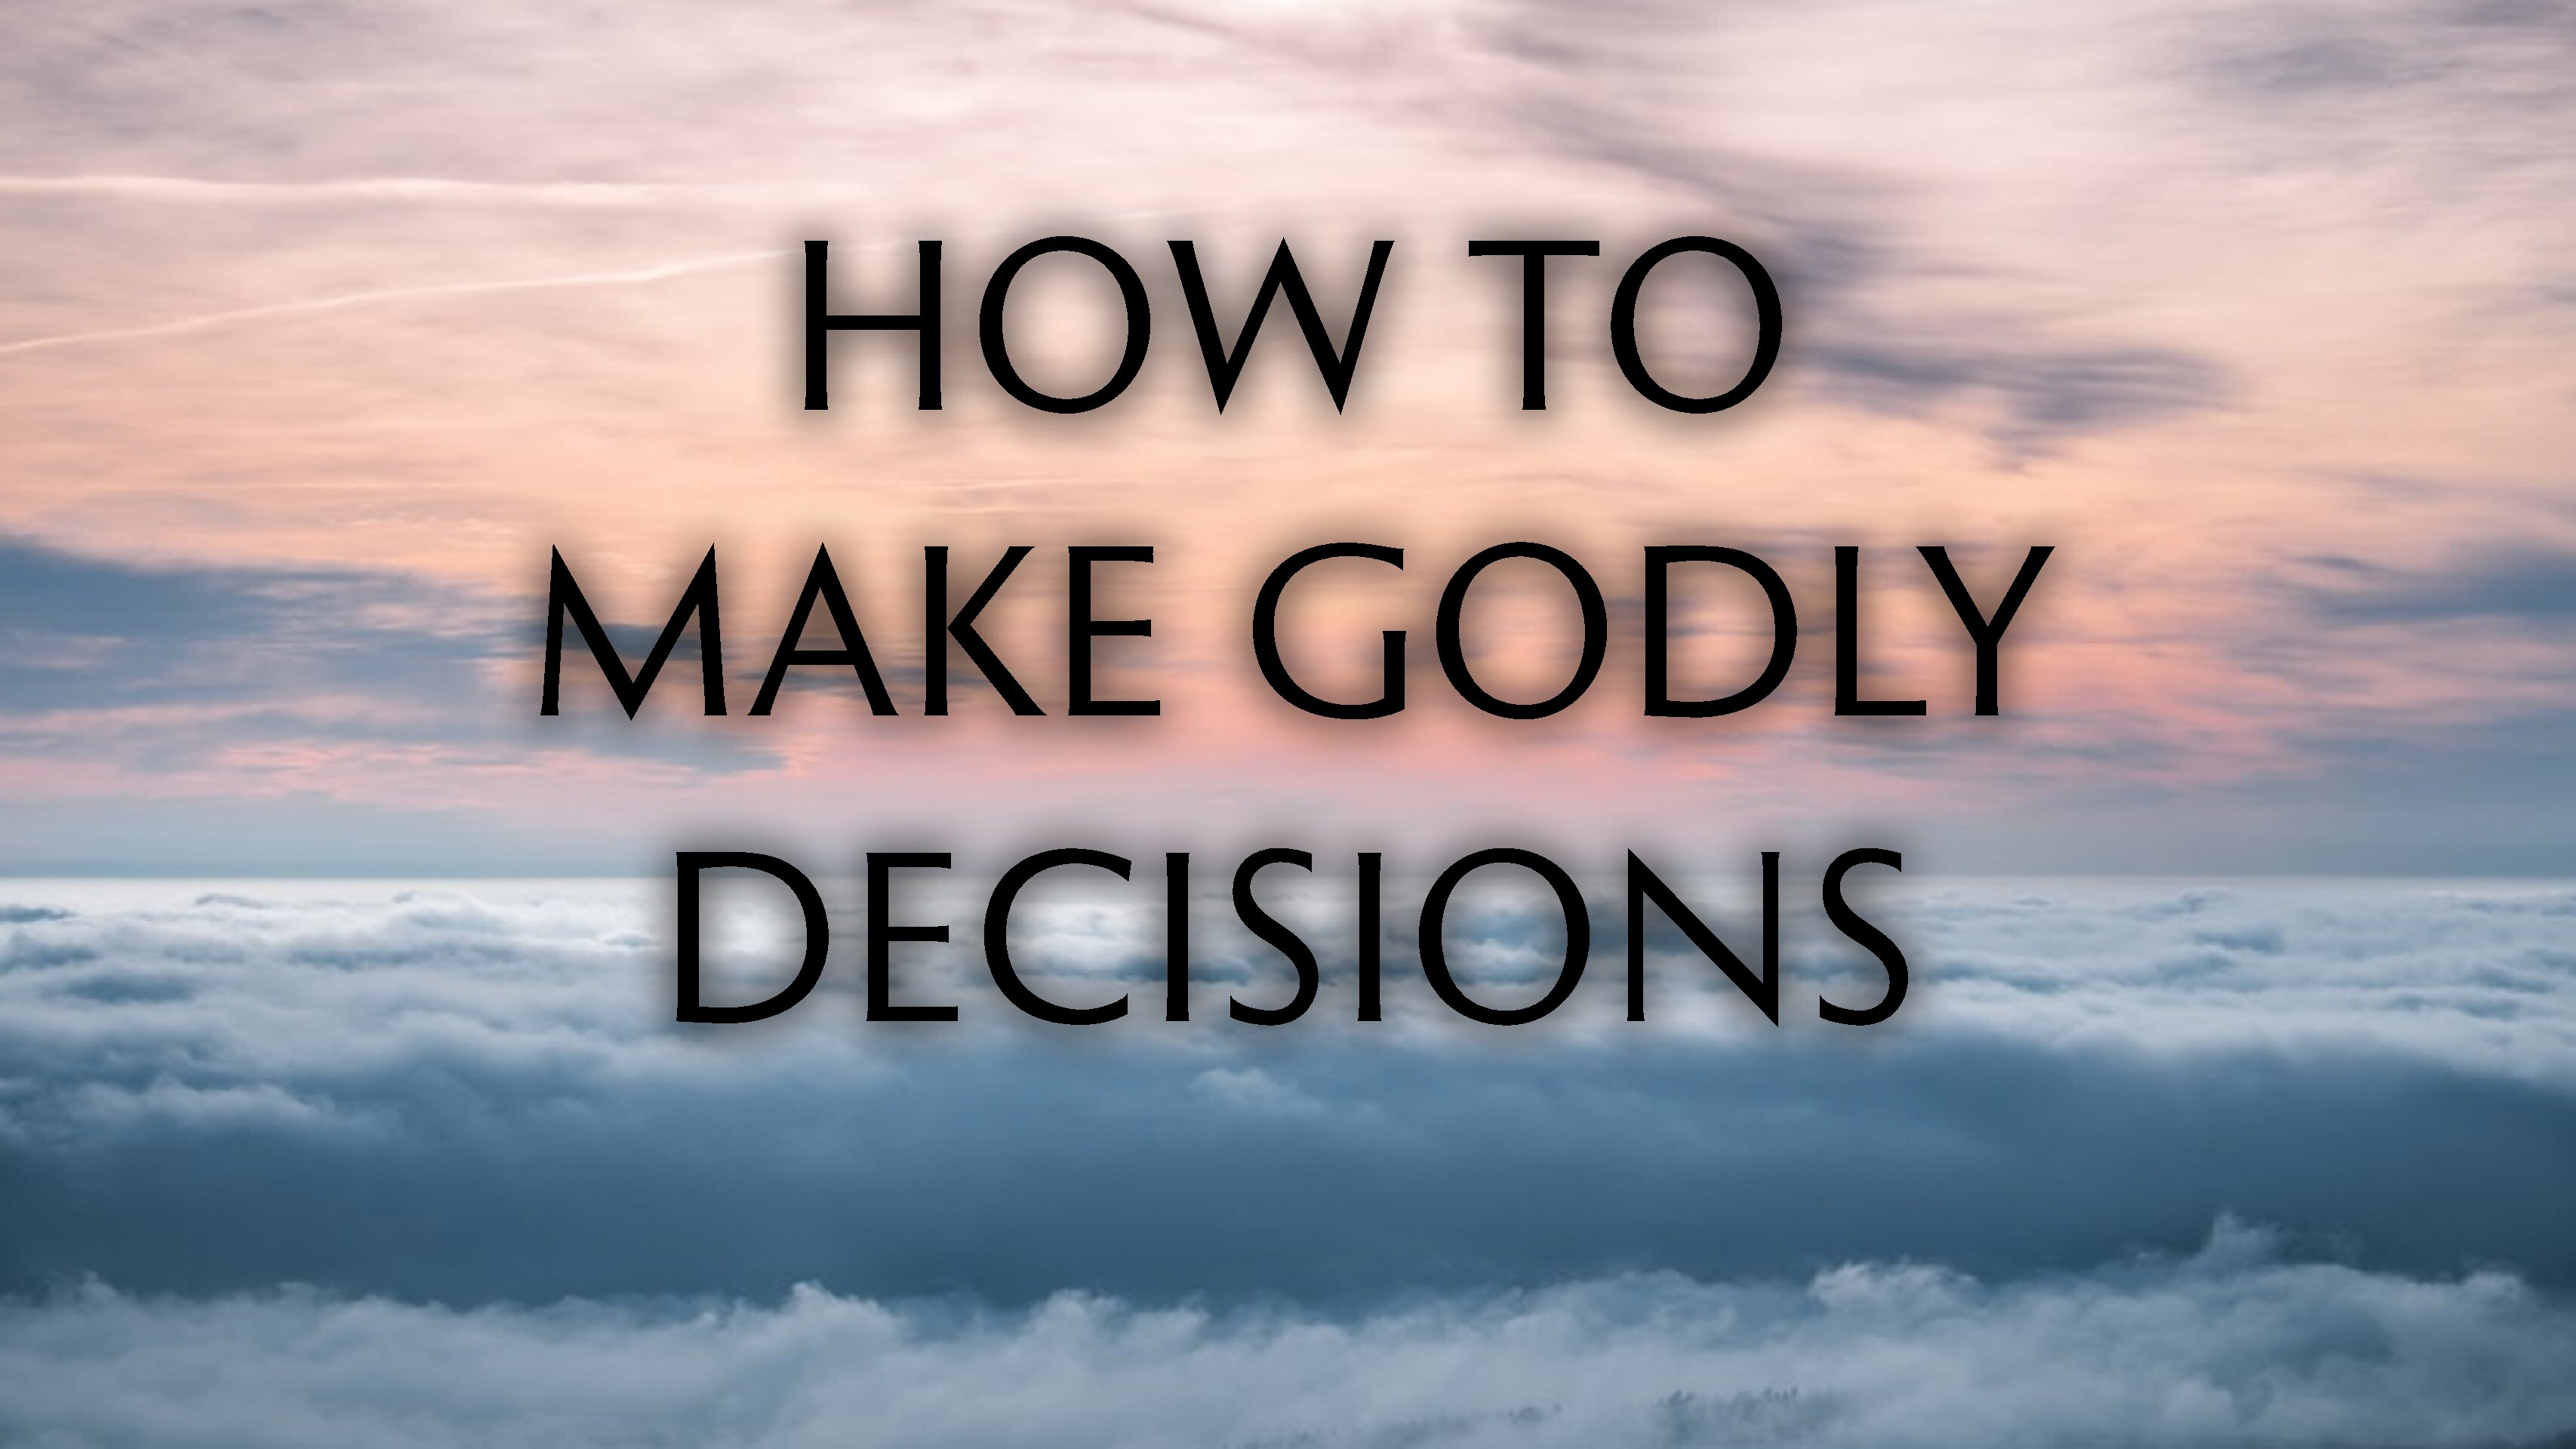 How To Make Godly Decisions